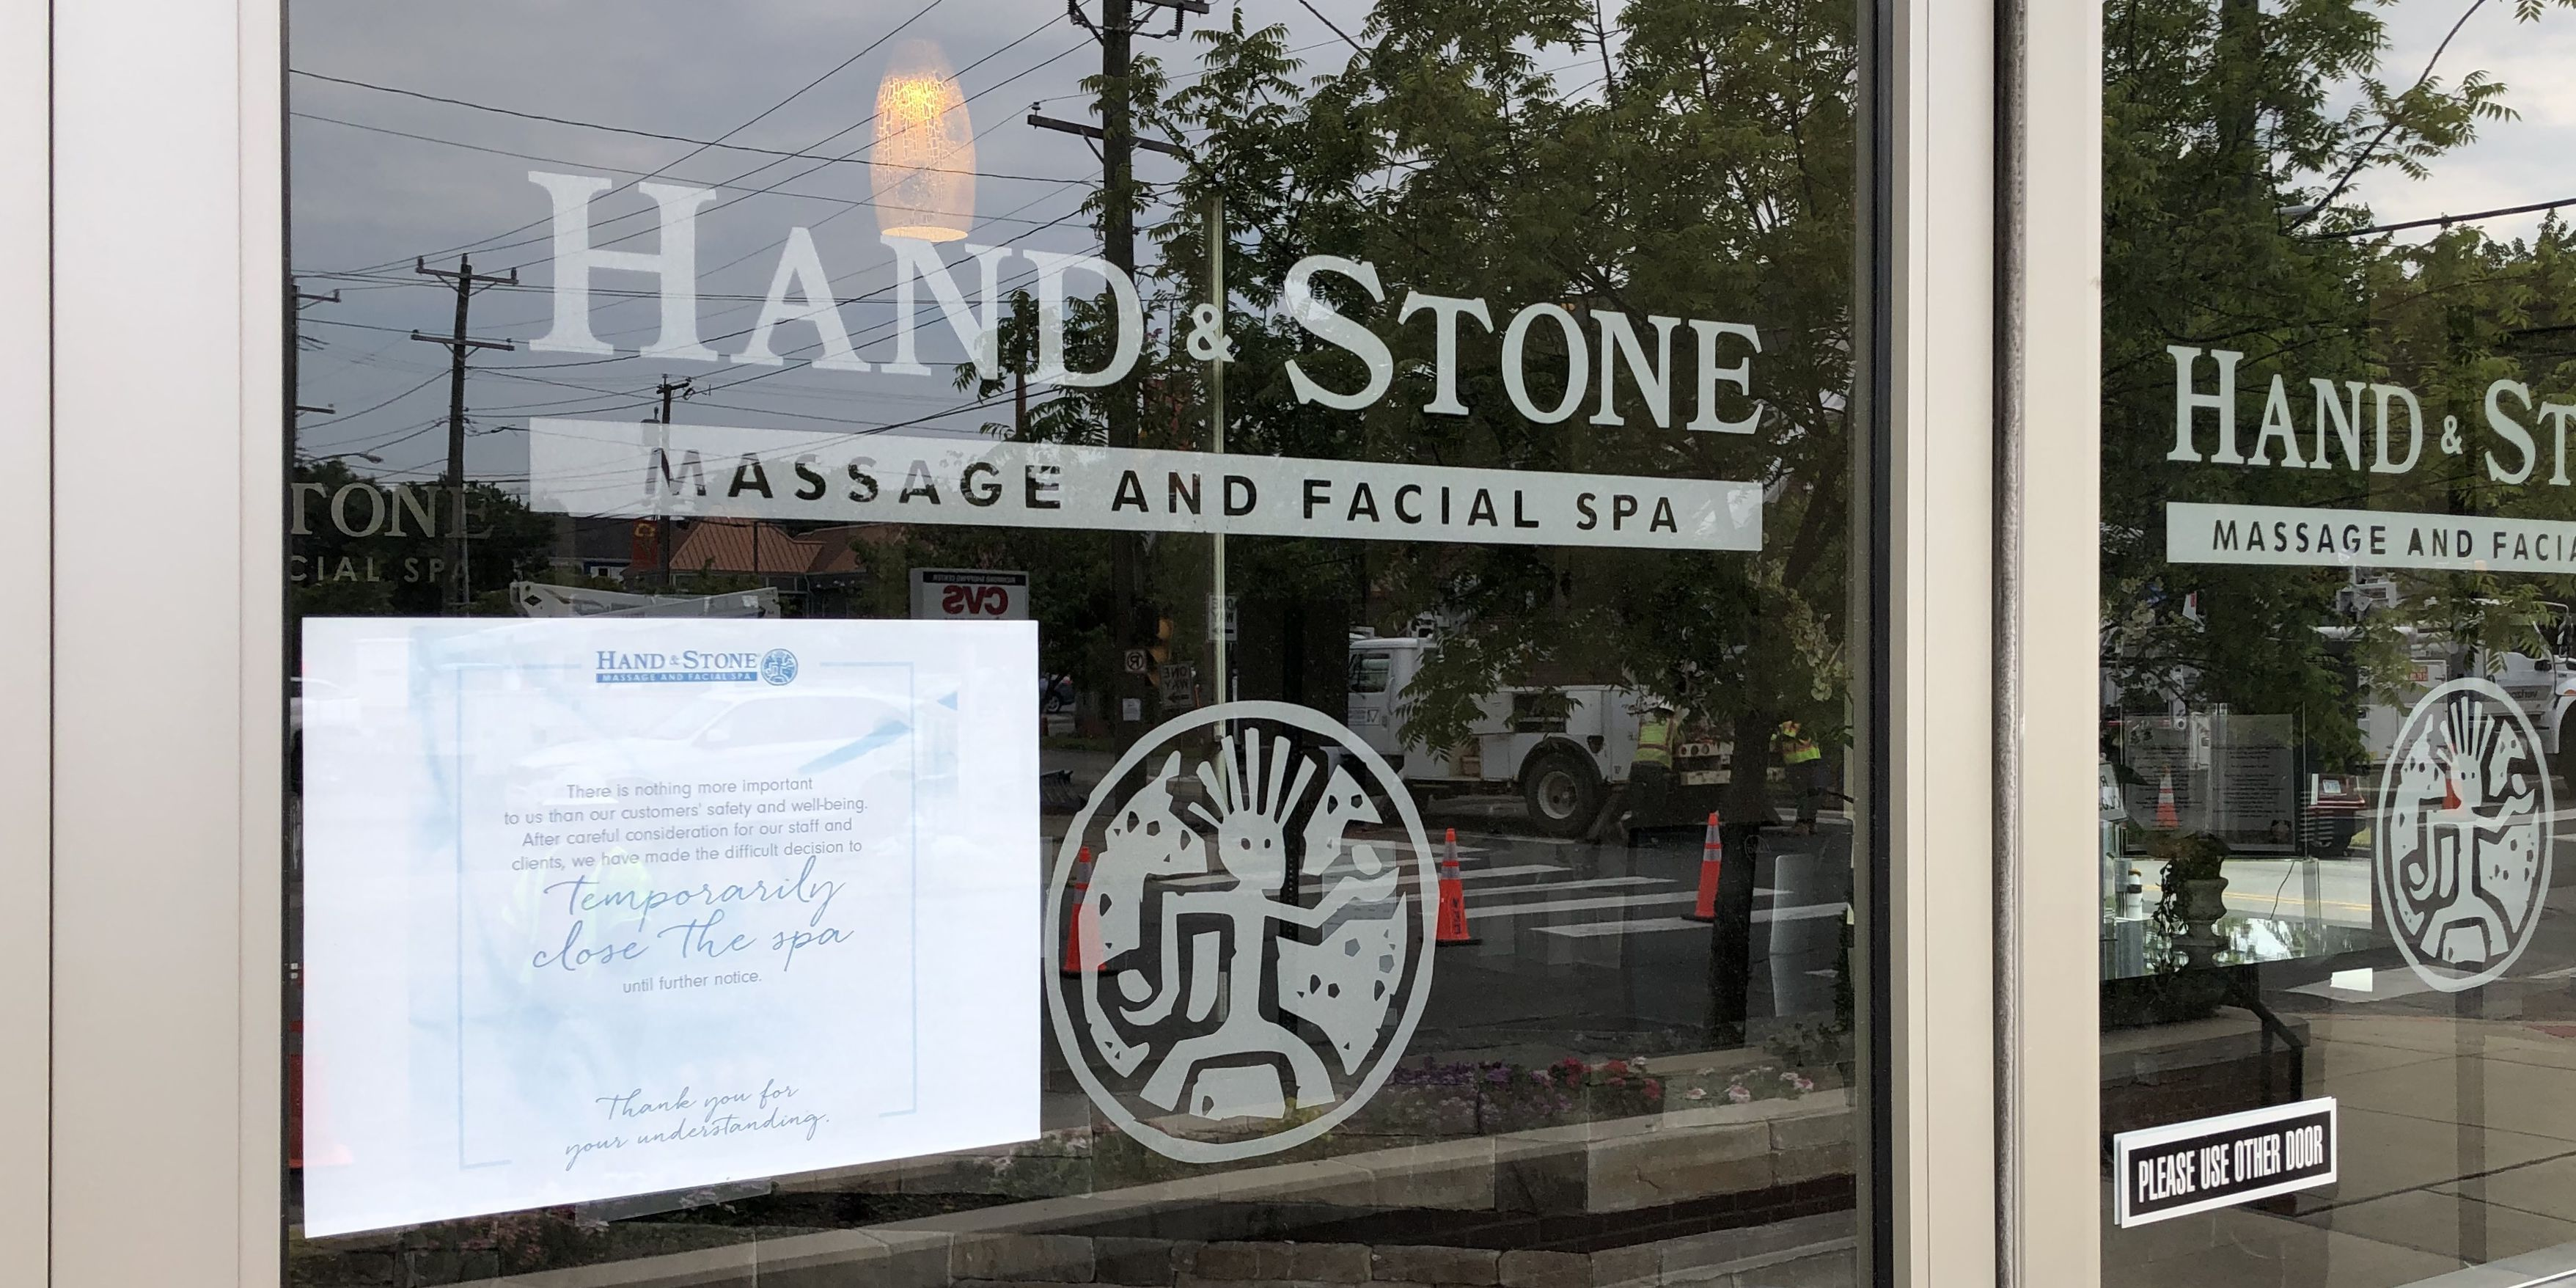 Most spas to reopen with new protocols under 'Phase 1' guidelines